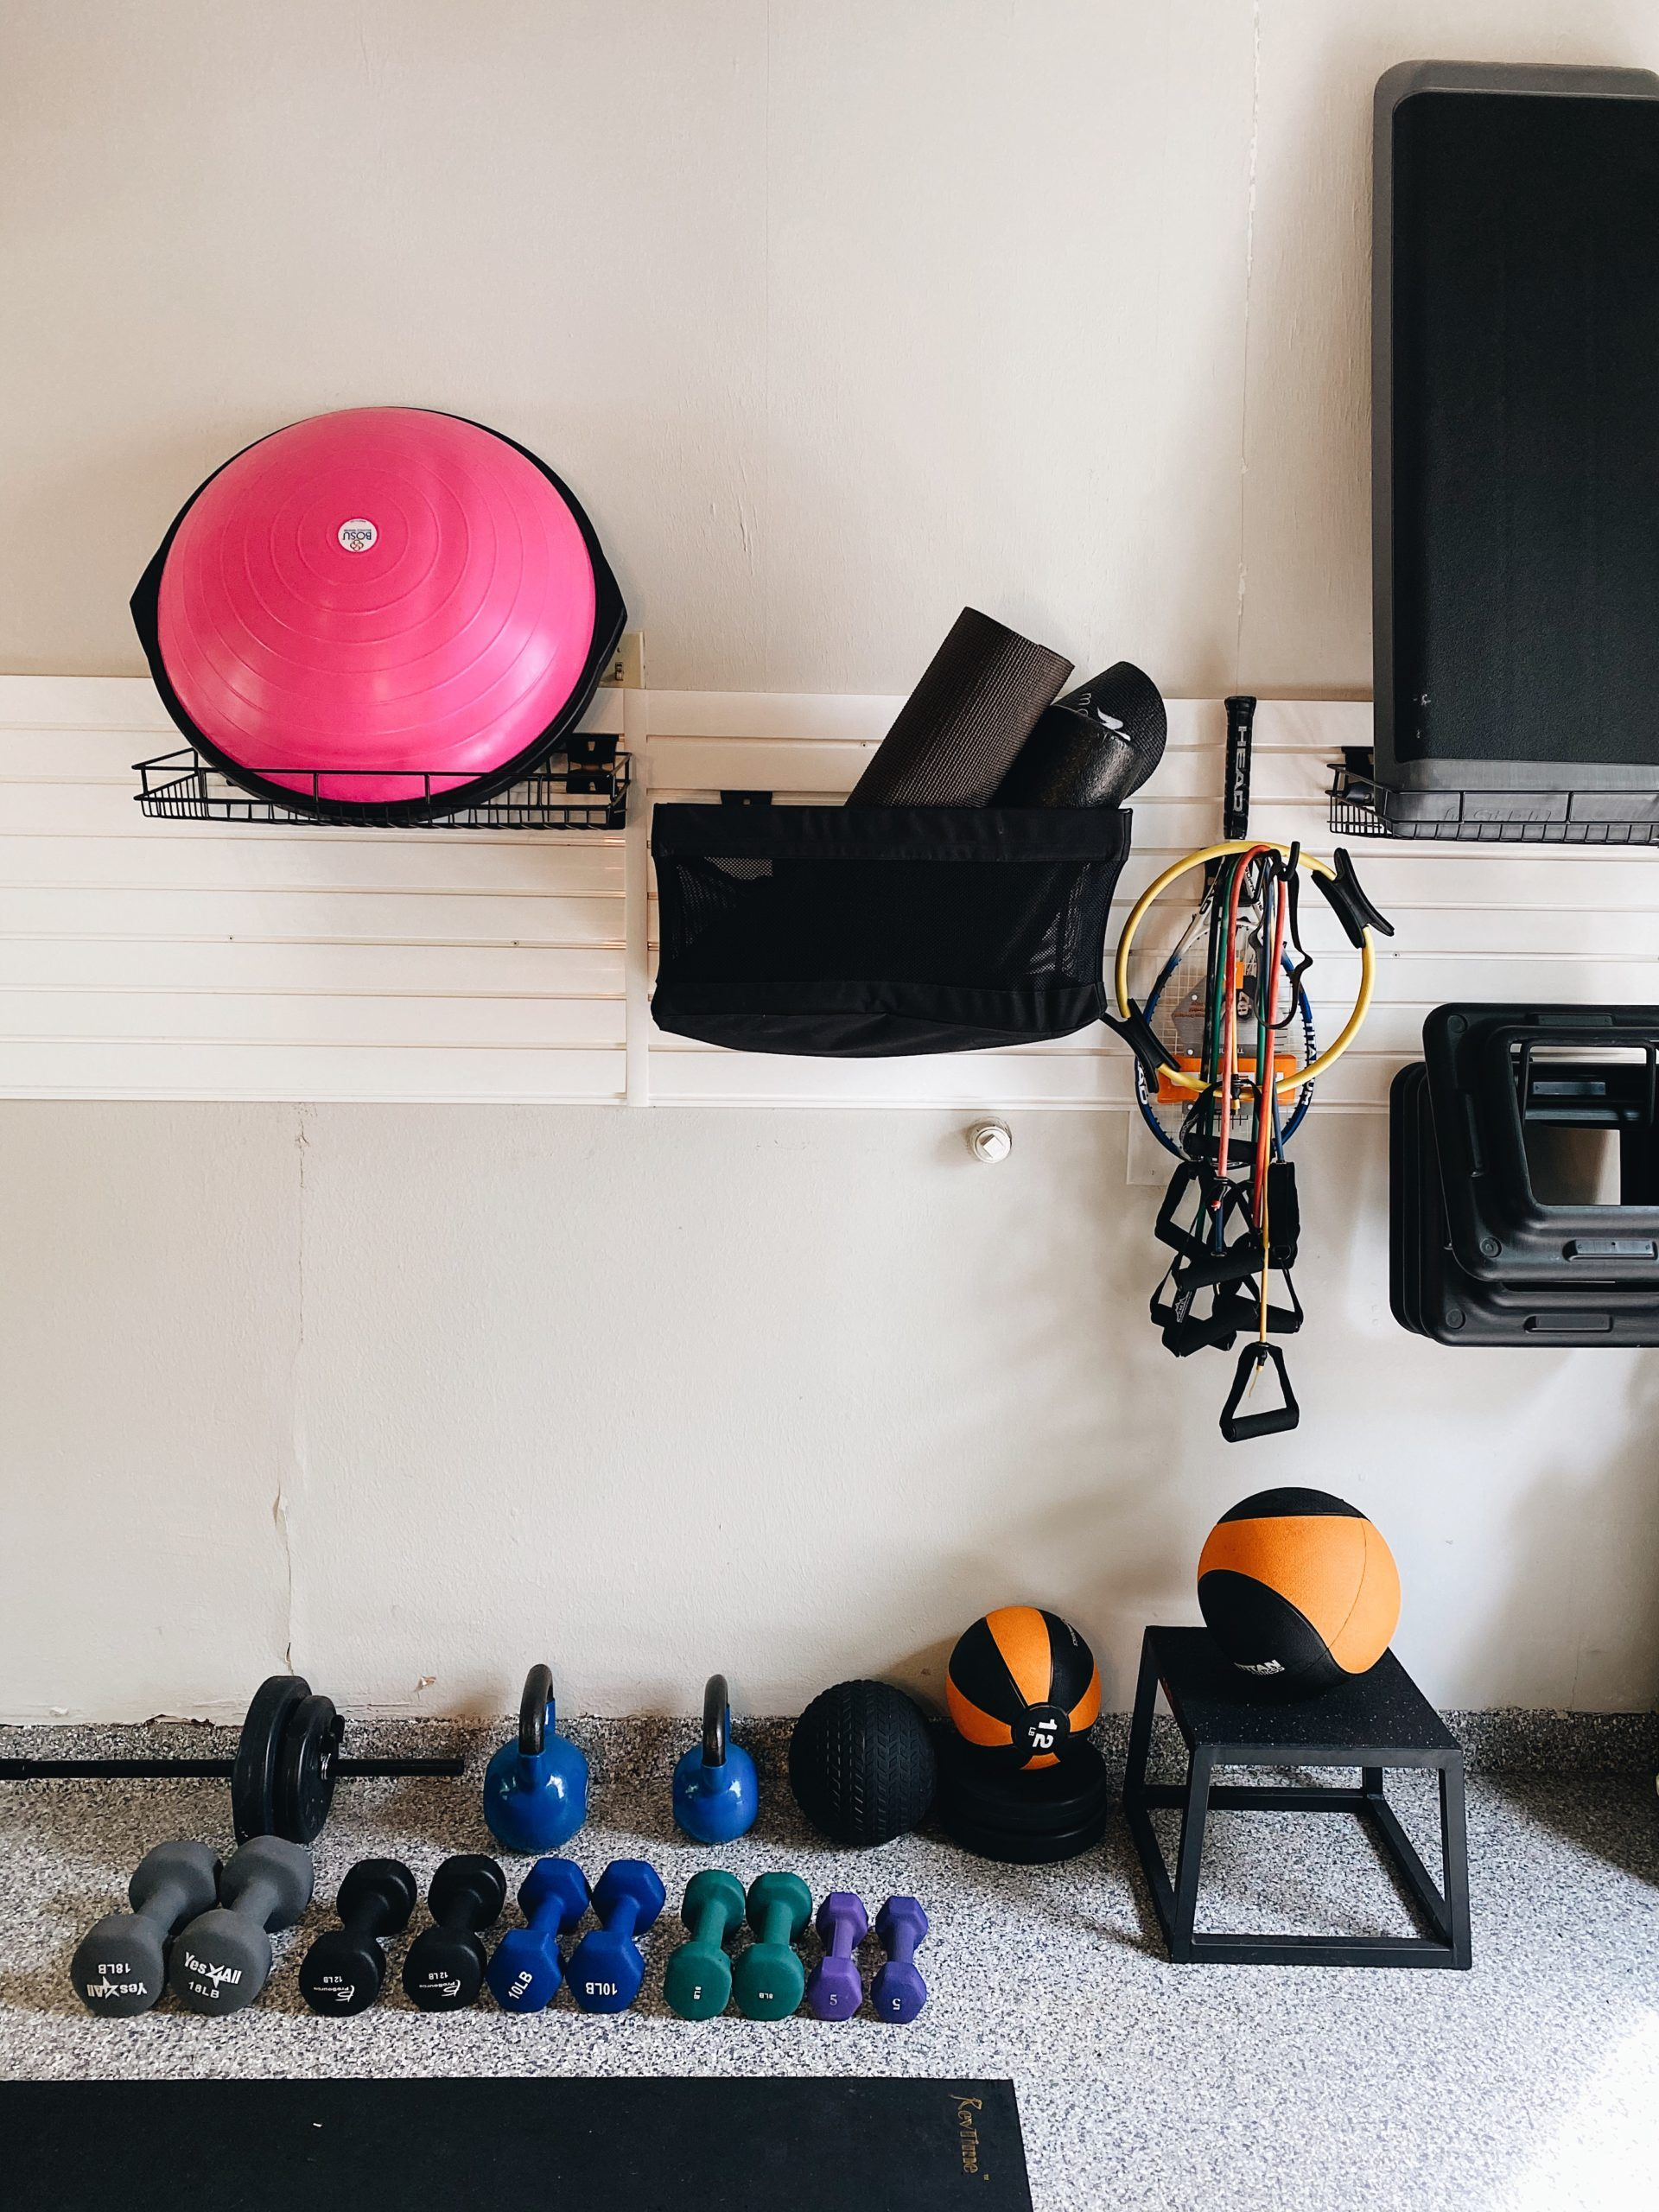 Amazon fitness equipment for your home gym setup the